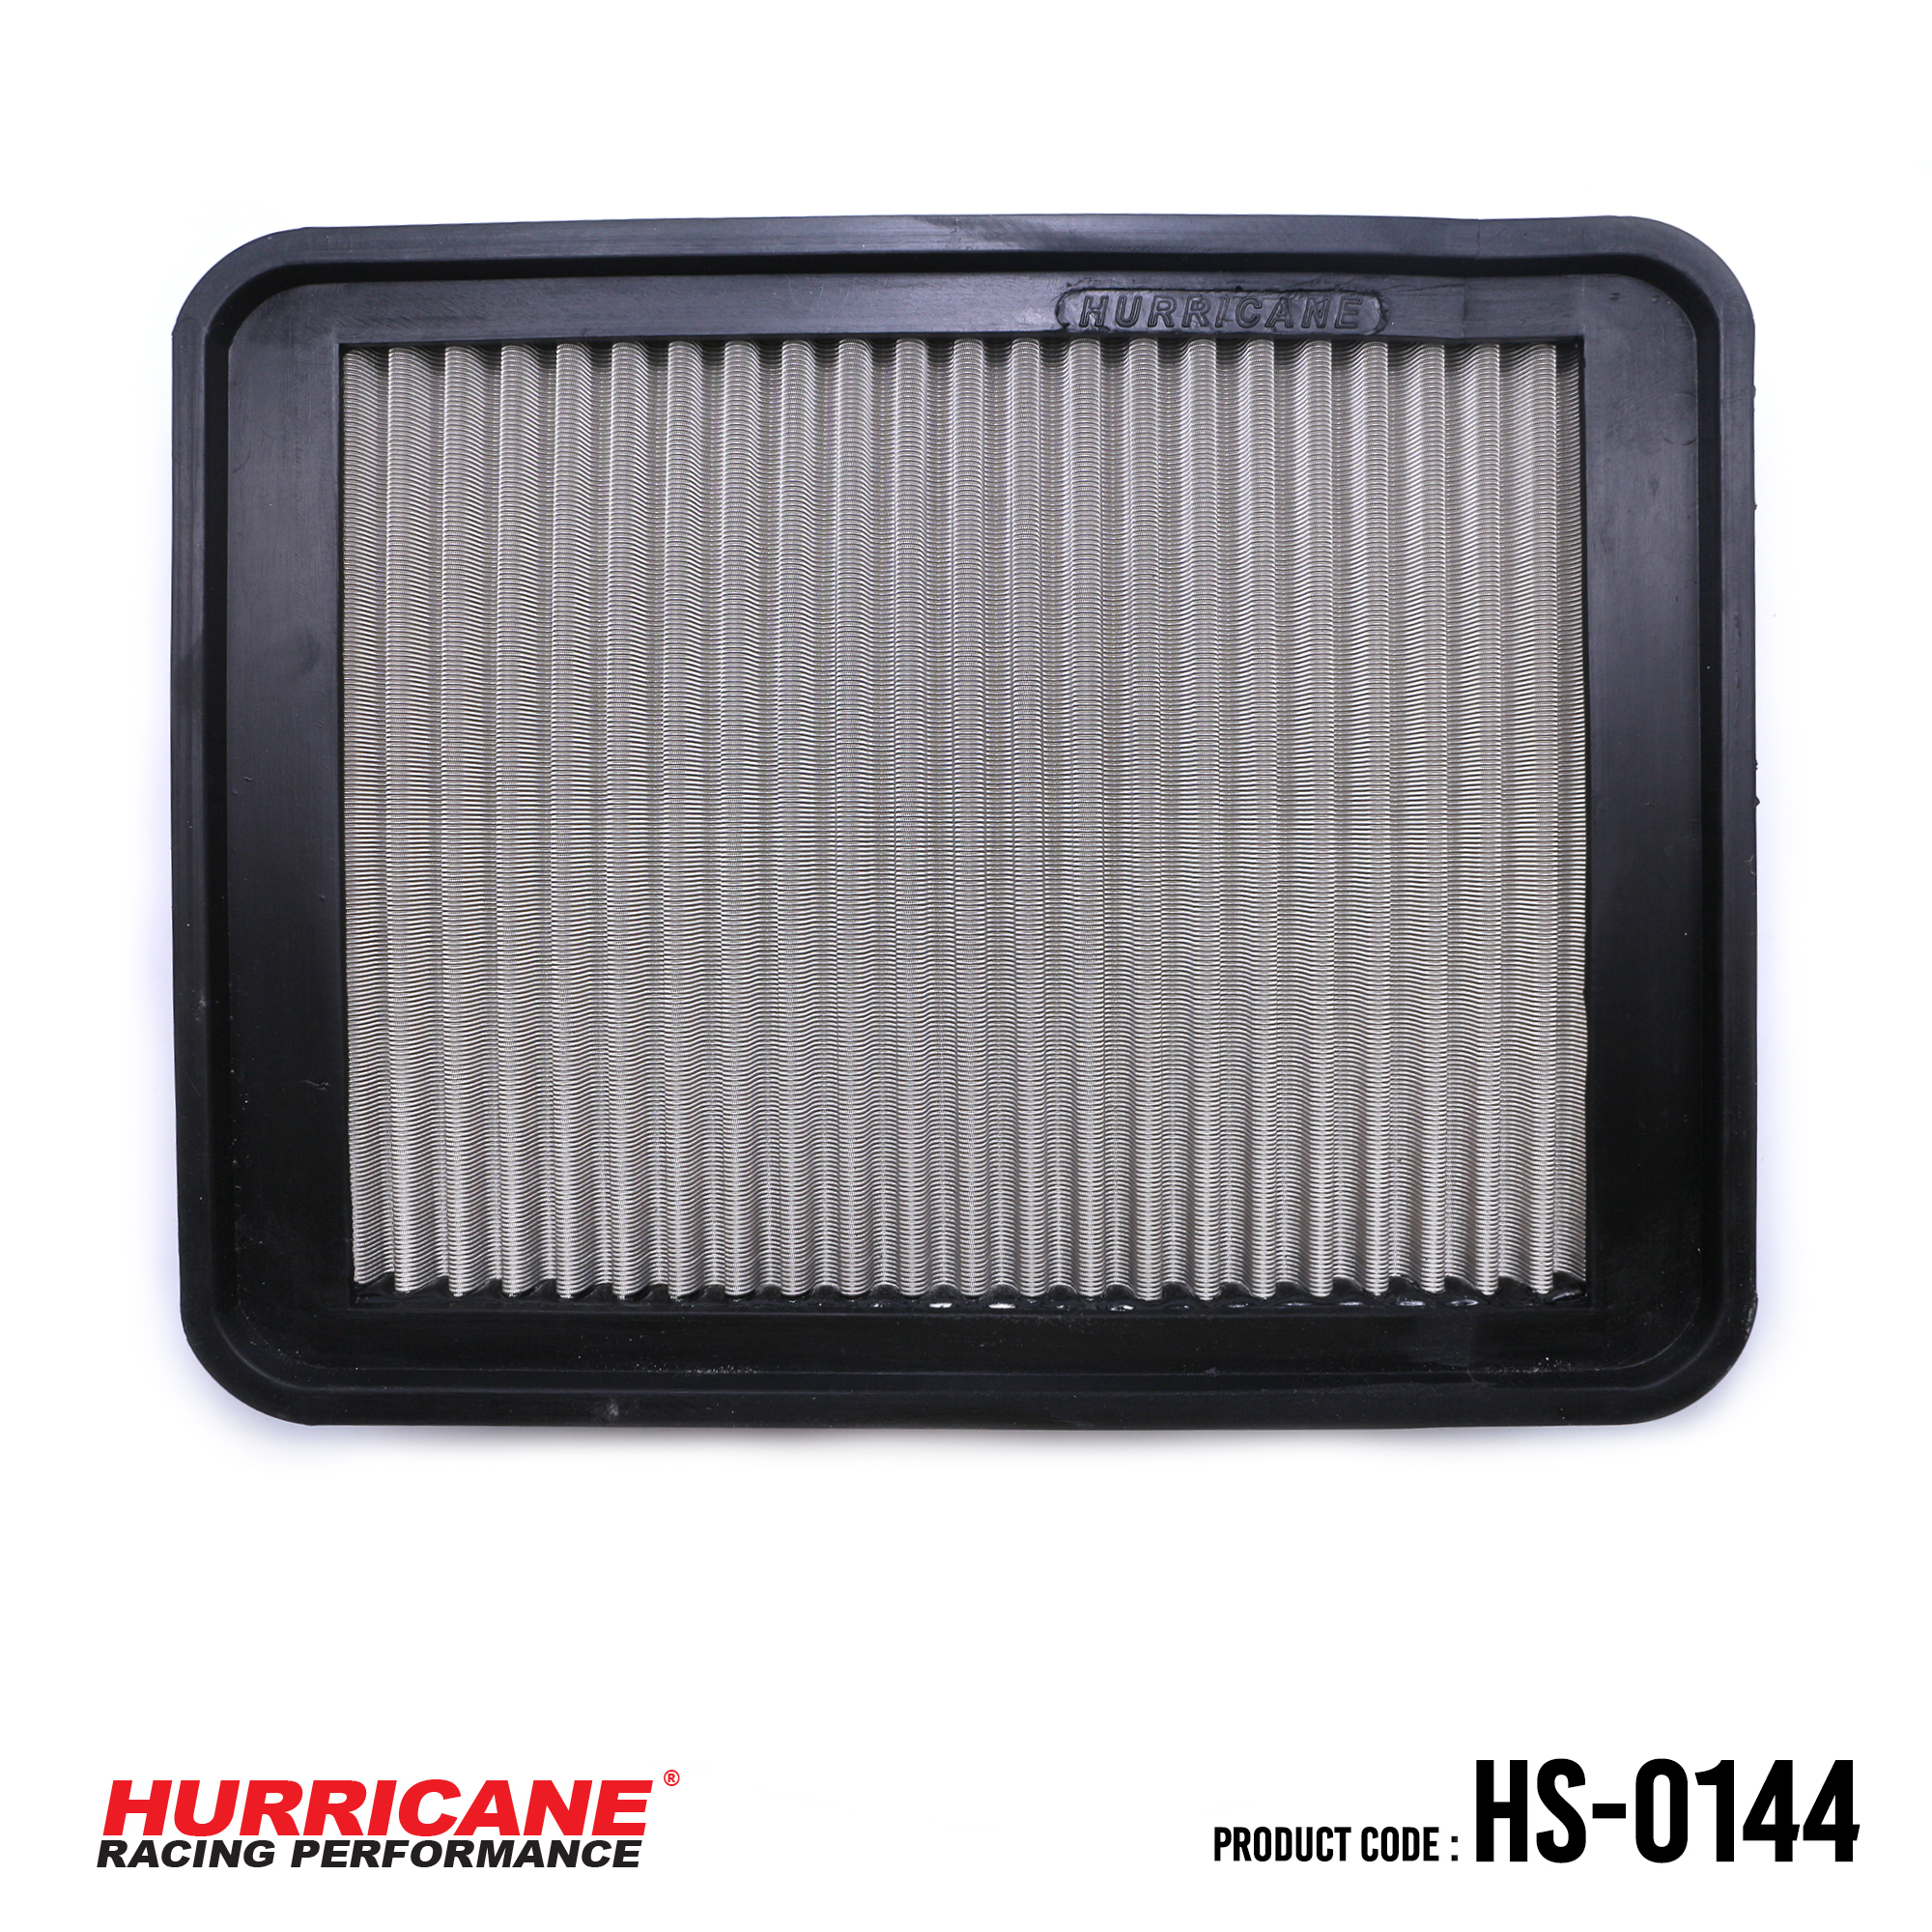 HURRICANE STAINLESS STEEL AIR FILTER FOR HS-0144 Toyota